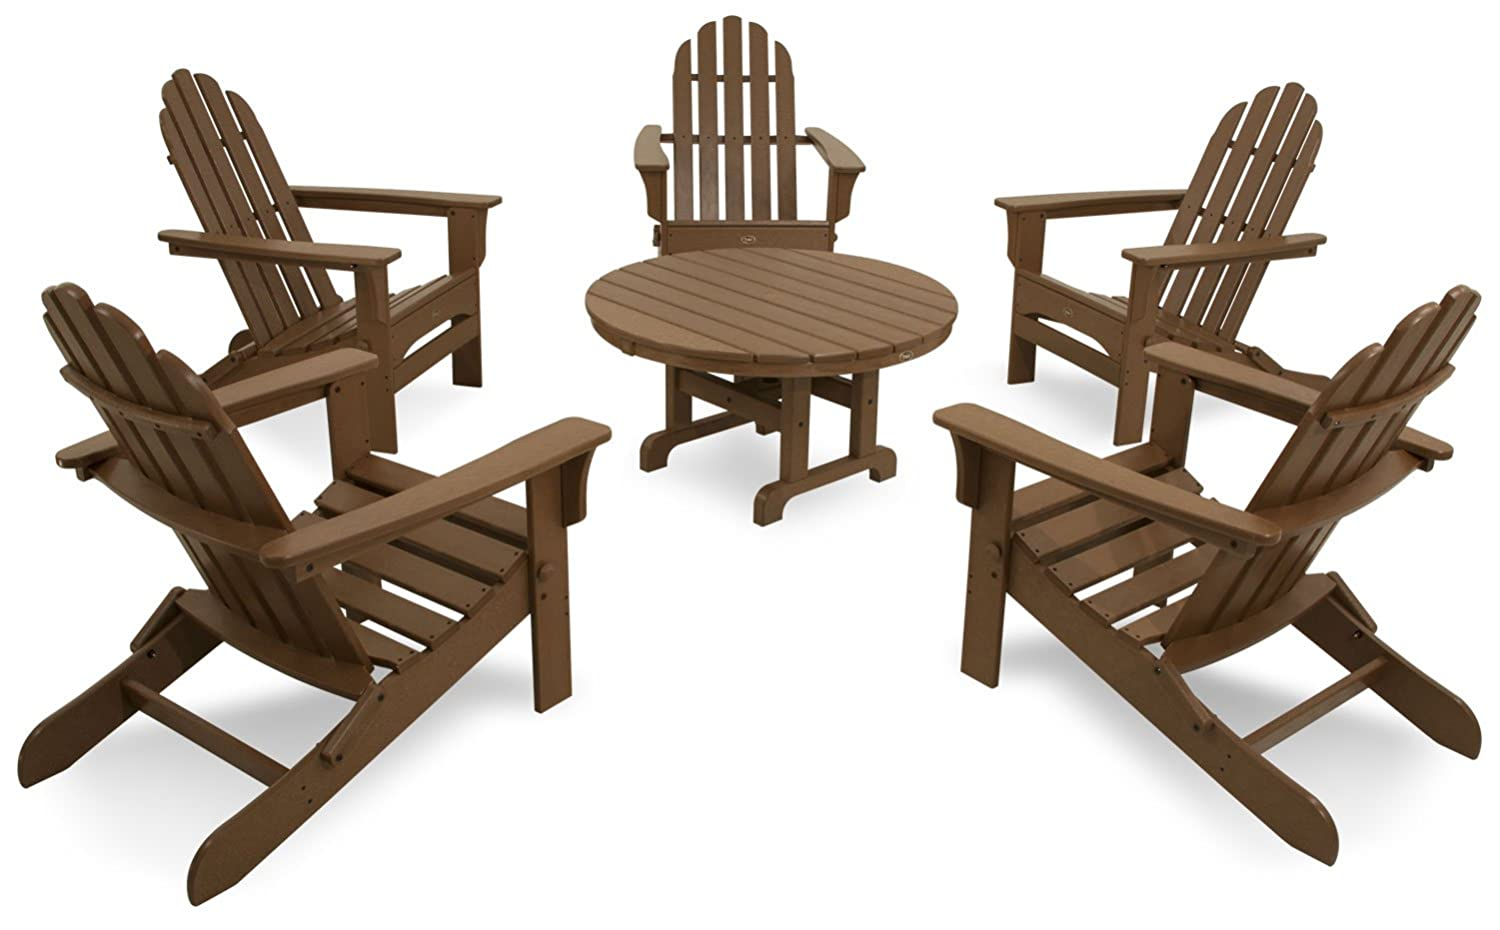 Amazon.com : Trex Outdoor Furniture TXS115 1 TH Cape Cod 6 Piece Folding  Adirondack Conversation Set, Tree House : Adirondack Chairs : Garden U0026  Outdoor